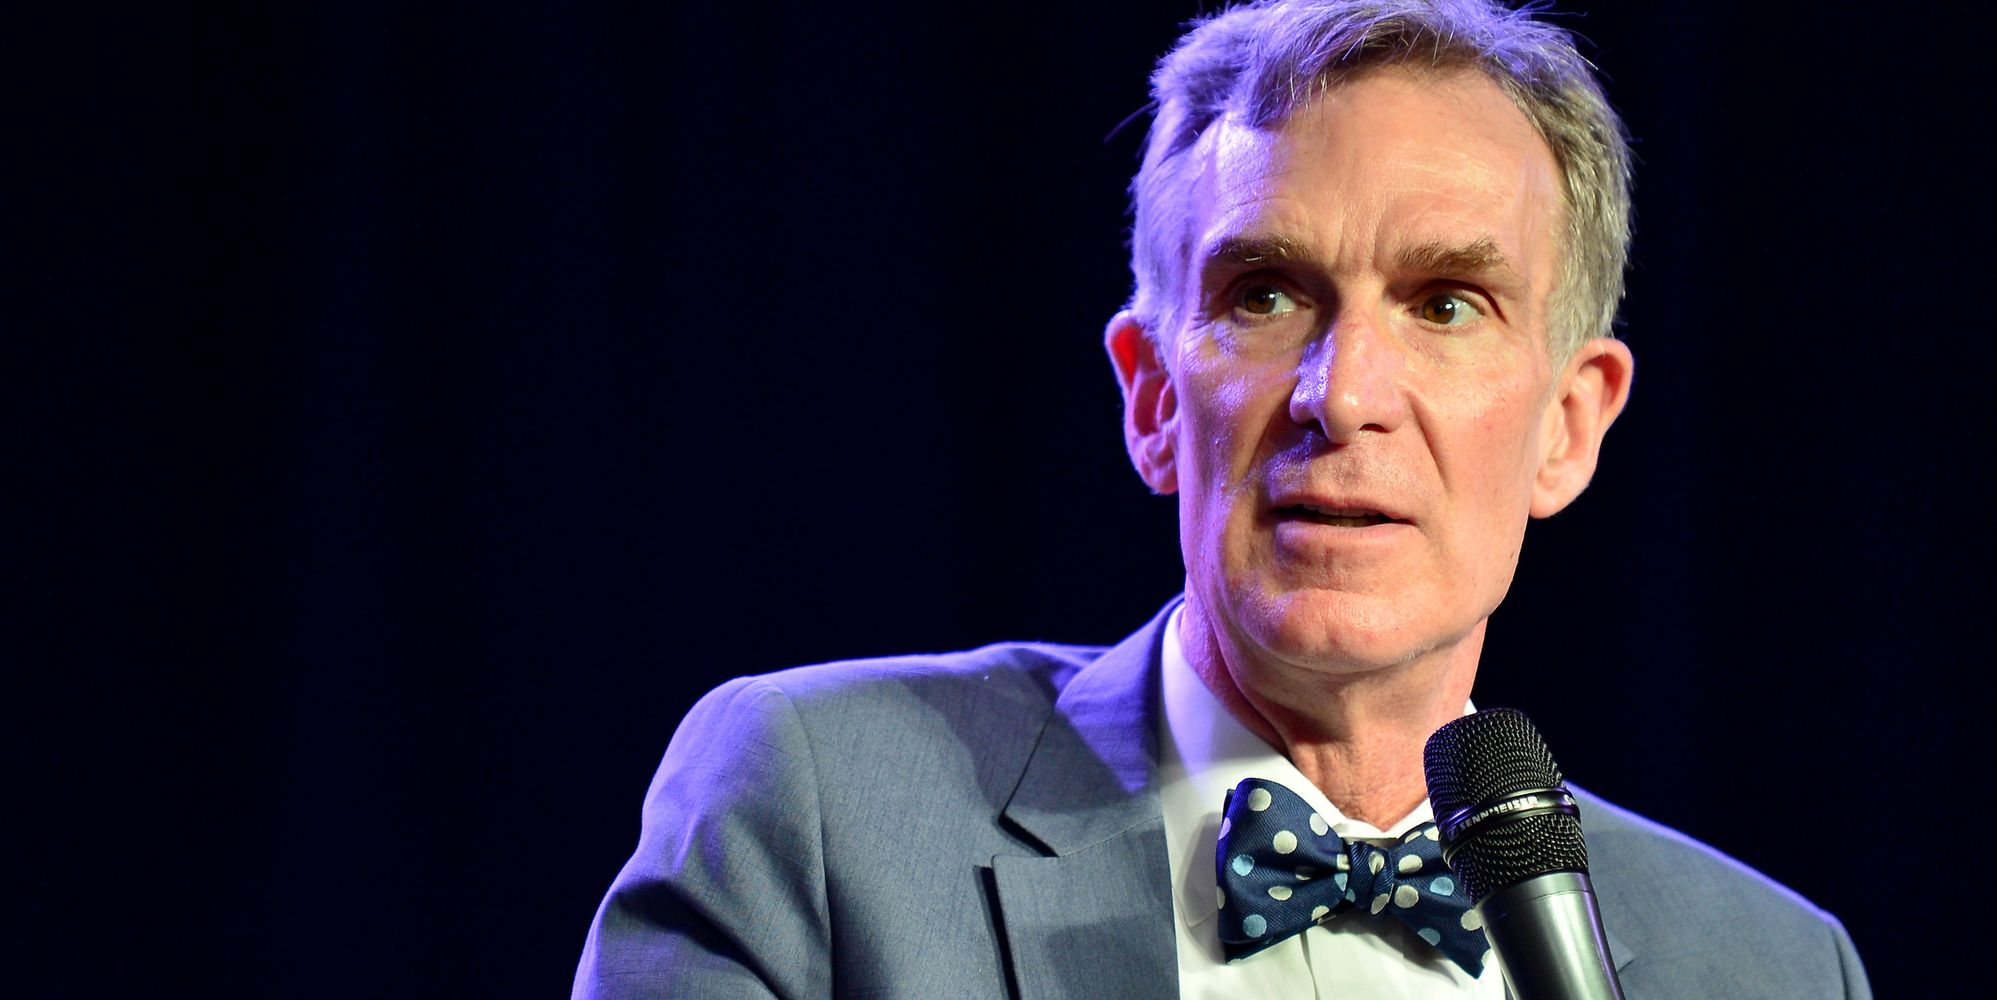 Bill Nye's Curious Connection To The Pearl Harbor Attacks